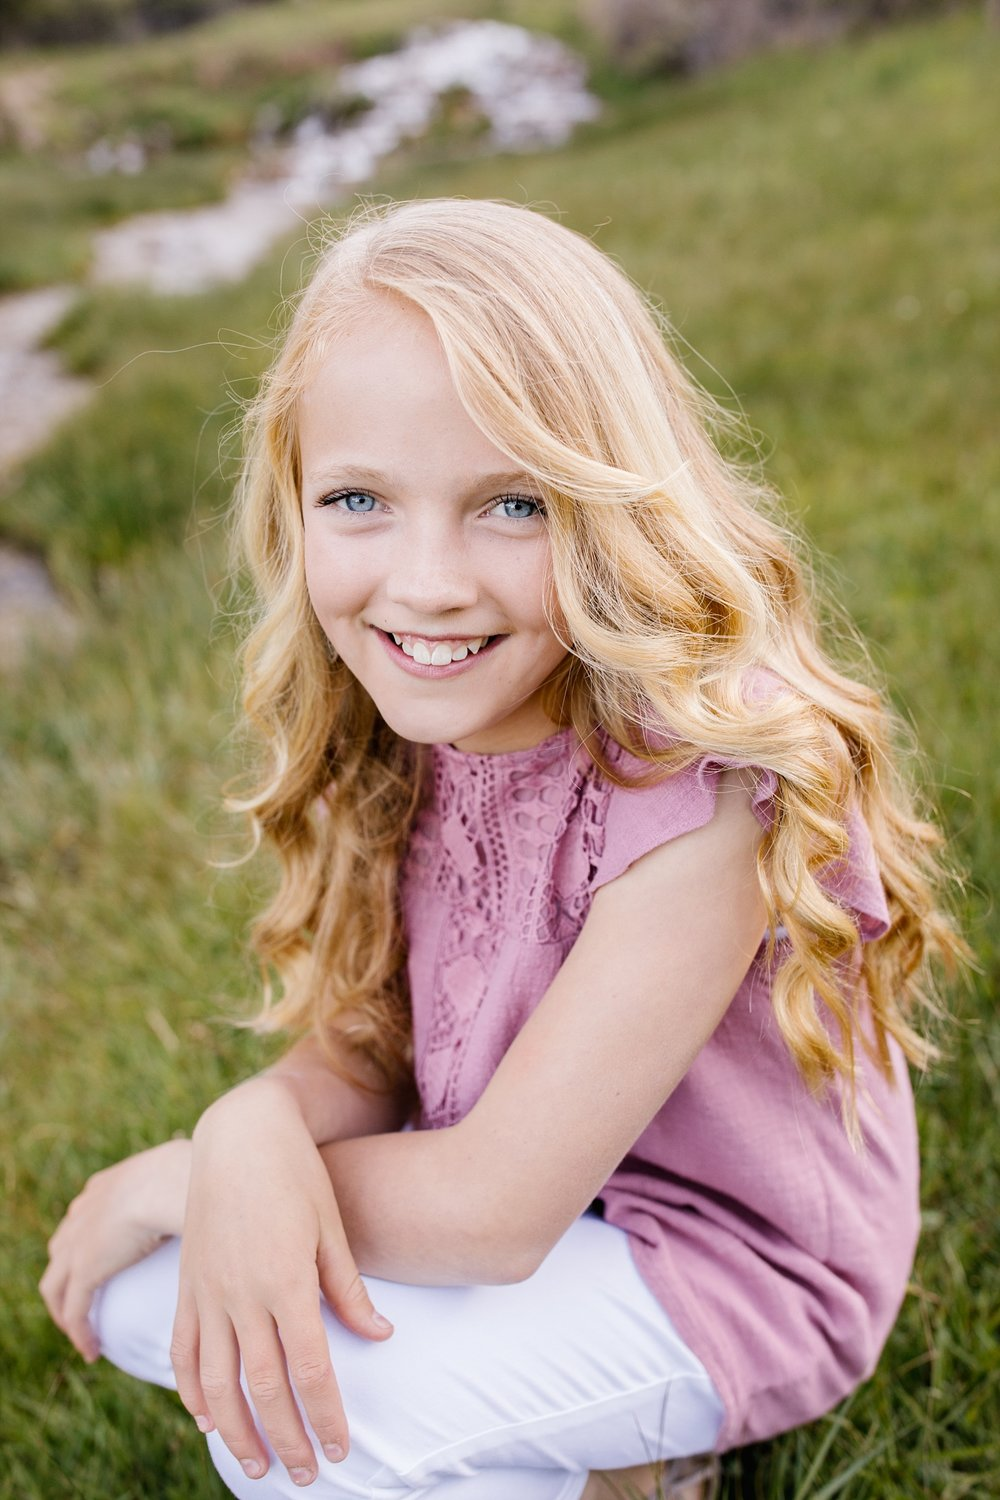 Bagley-131_Lizzie-B-Imagery-Utah-Family-Photographer-Central-Utah-Extended-Family-Session.jpg